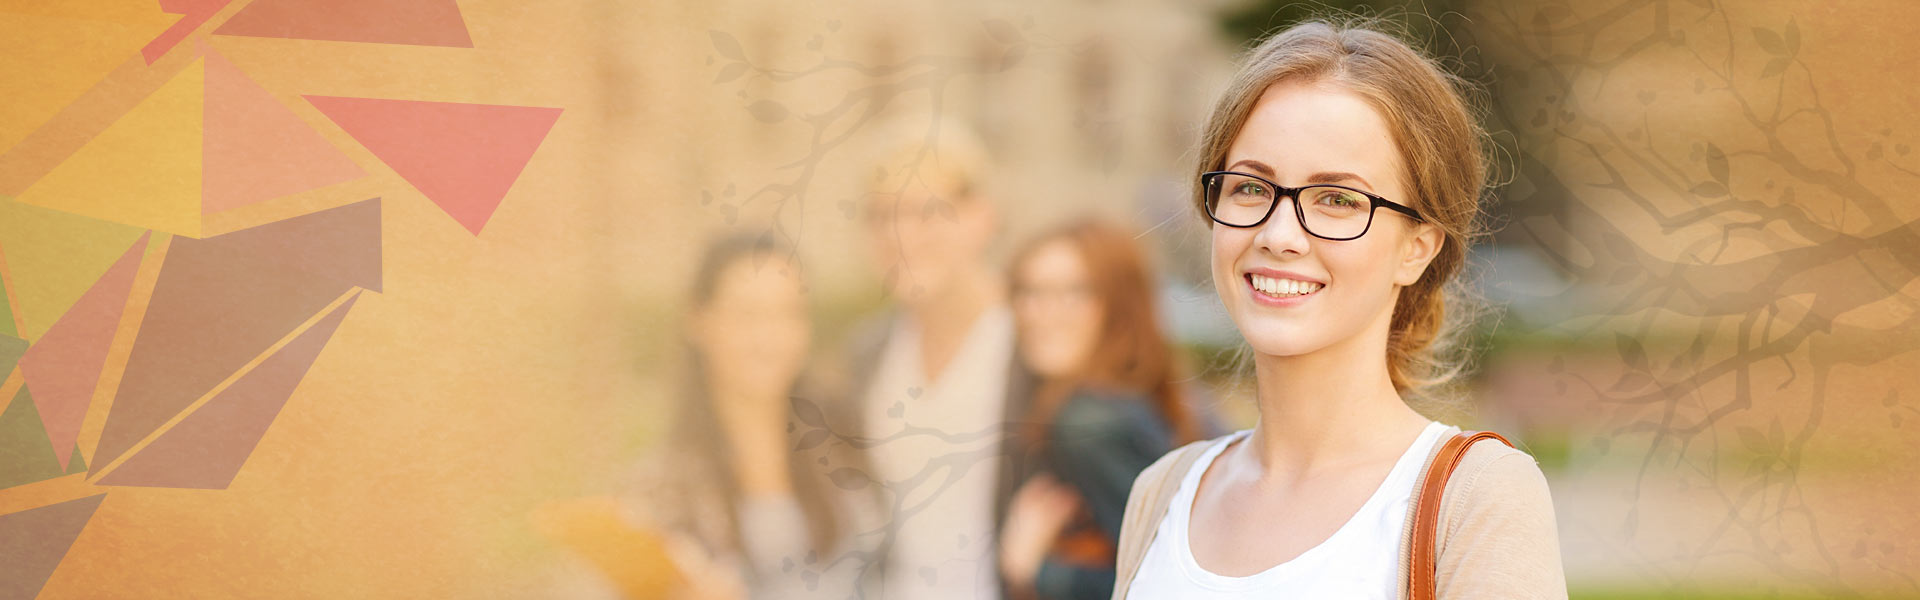 image showing happy student